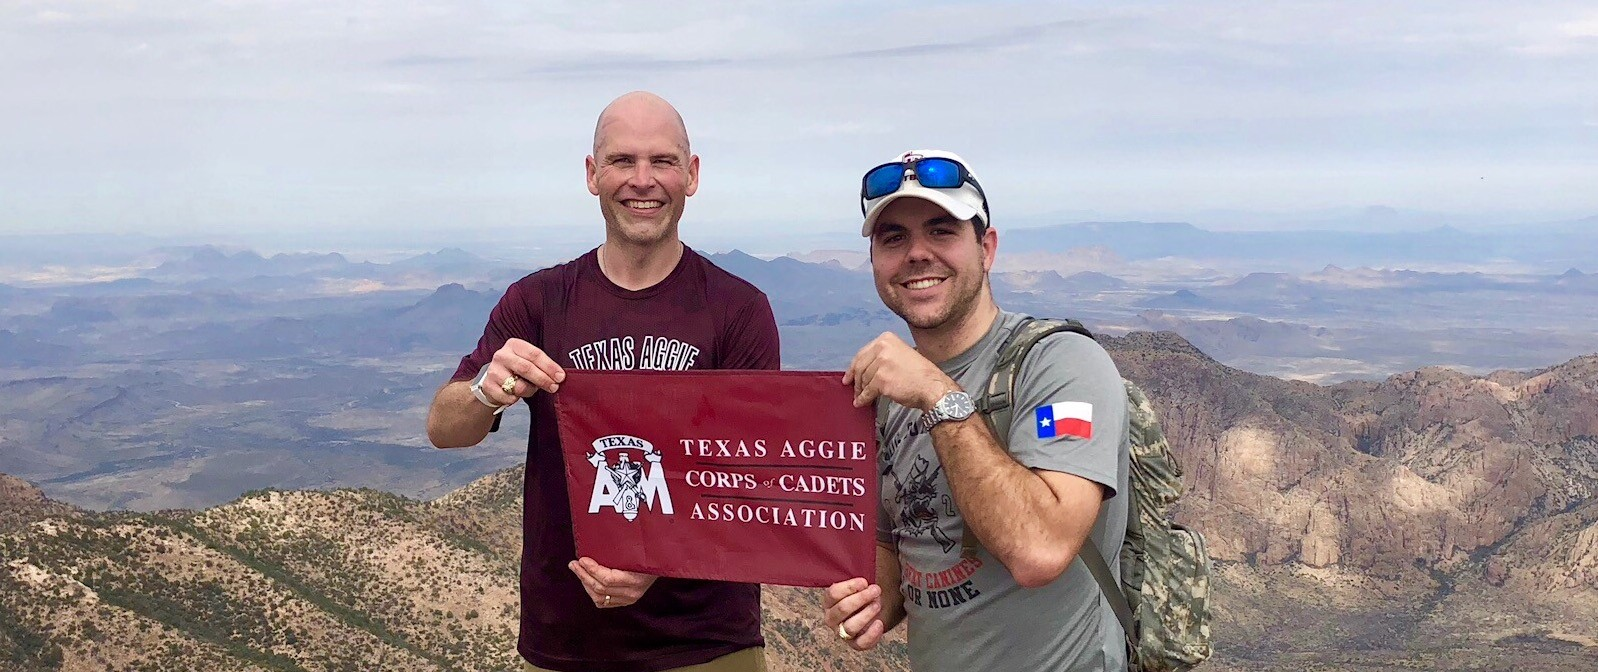 Tom Pool '96 and Mason Brooks '16 recently took a hiking trip to Big Bend National Park. They are standing at the top of Emory Peak, the highest mountain peak in Big Bend..jpg